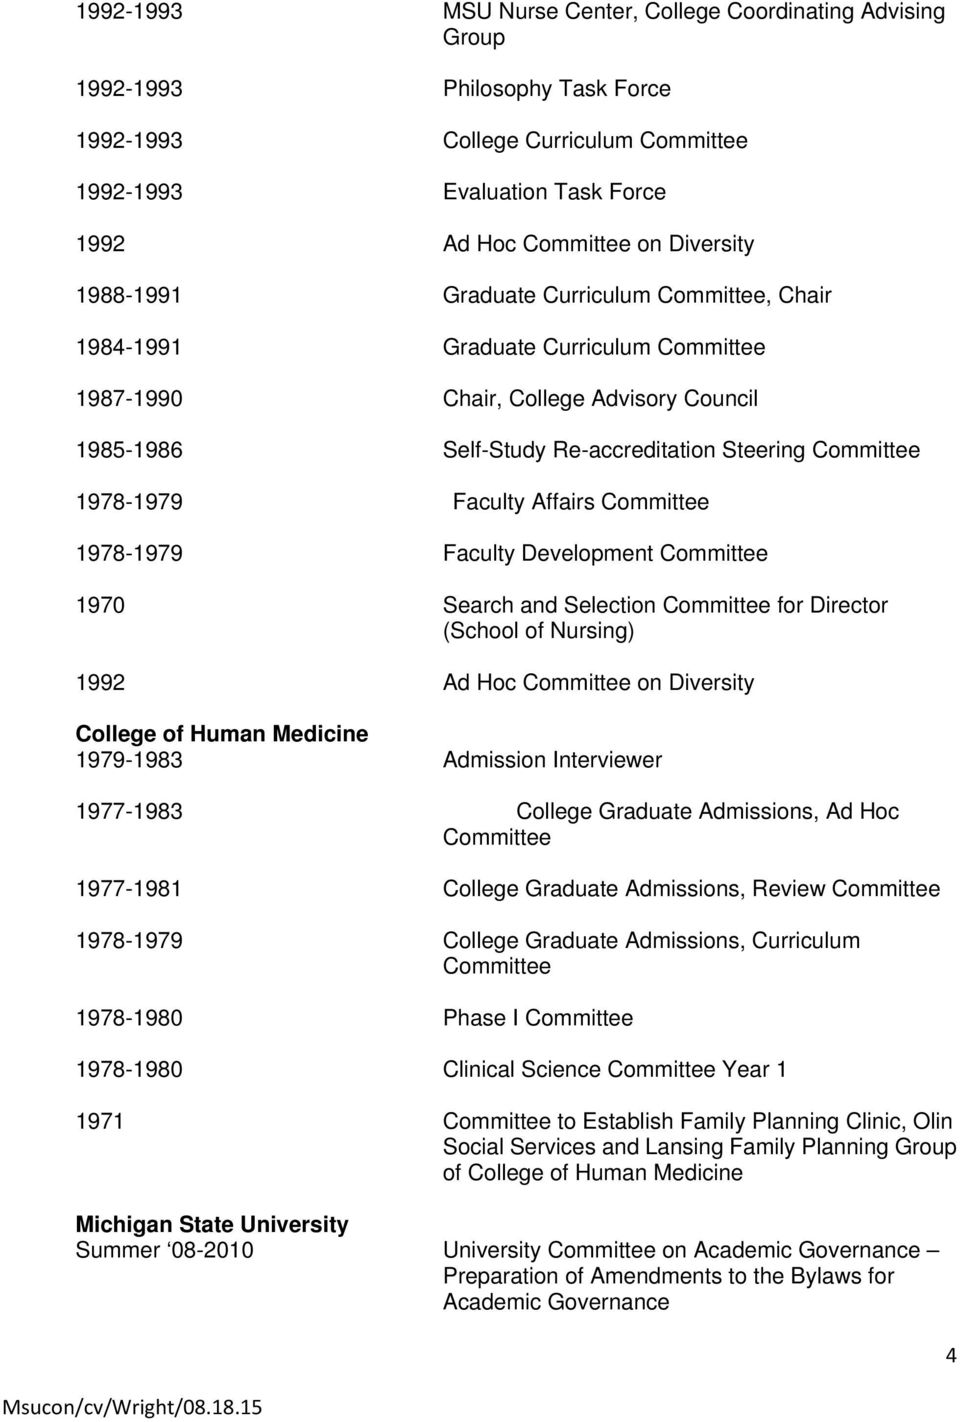 1978-1979 Faculty Affairs Committee 1978-1979 Faculty Development Committee 1970 Search and Selection Committee for Director (School of Nursing) 1992 Ad Hoc Committee on Diversity College of Human